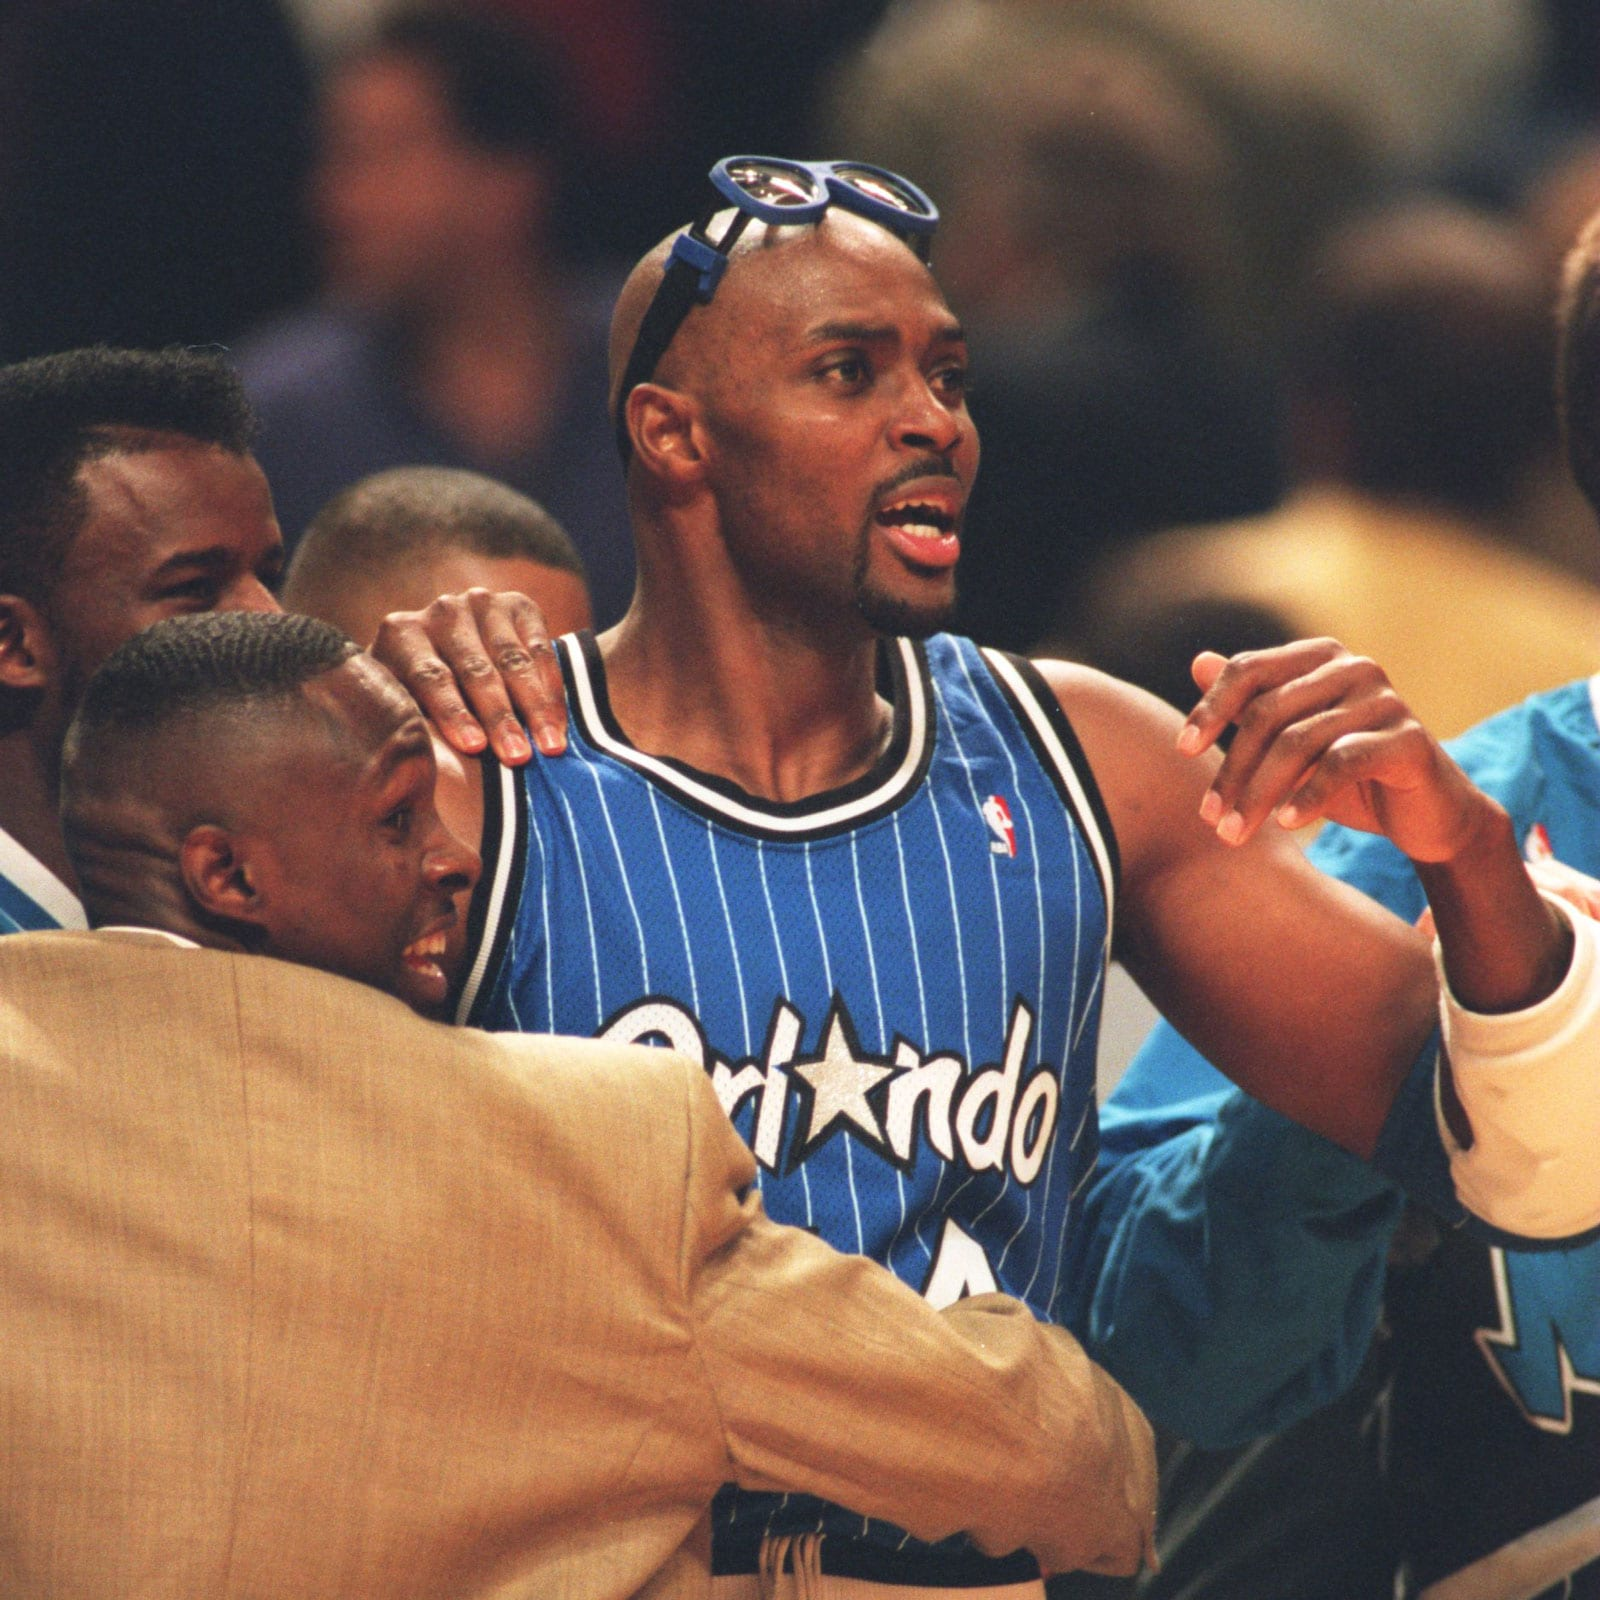 ORLANDO FORWARD HORACE GRANT CELEBRATES DURING THE MAGIC'S 108-102 VICTORY OVER THE CHICAGO BULLS IN THE SECOND ROUND OF THE NBA PLAYOFFS AT THE UNITED CENTER IN CHICAGO, ILLINOIS.